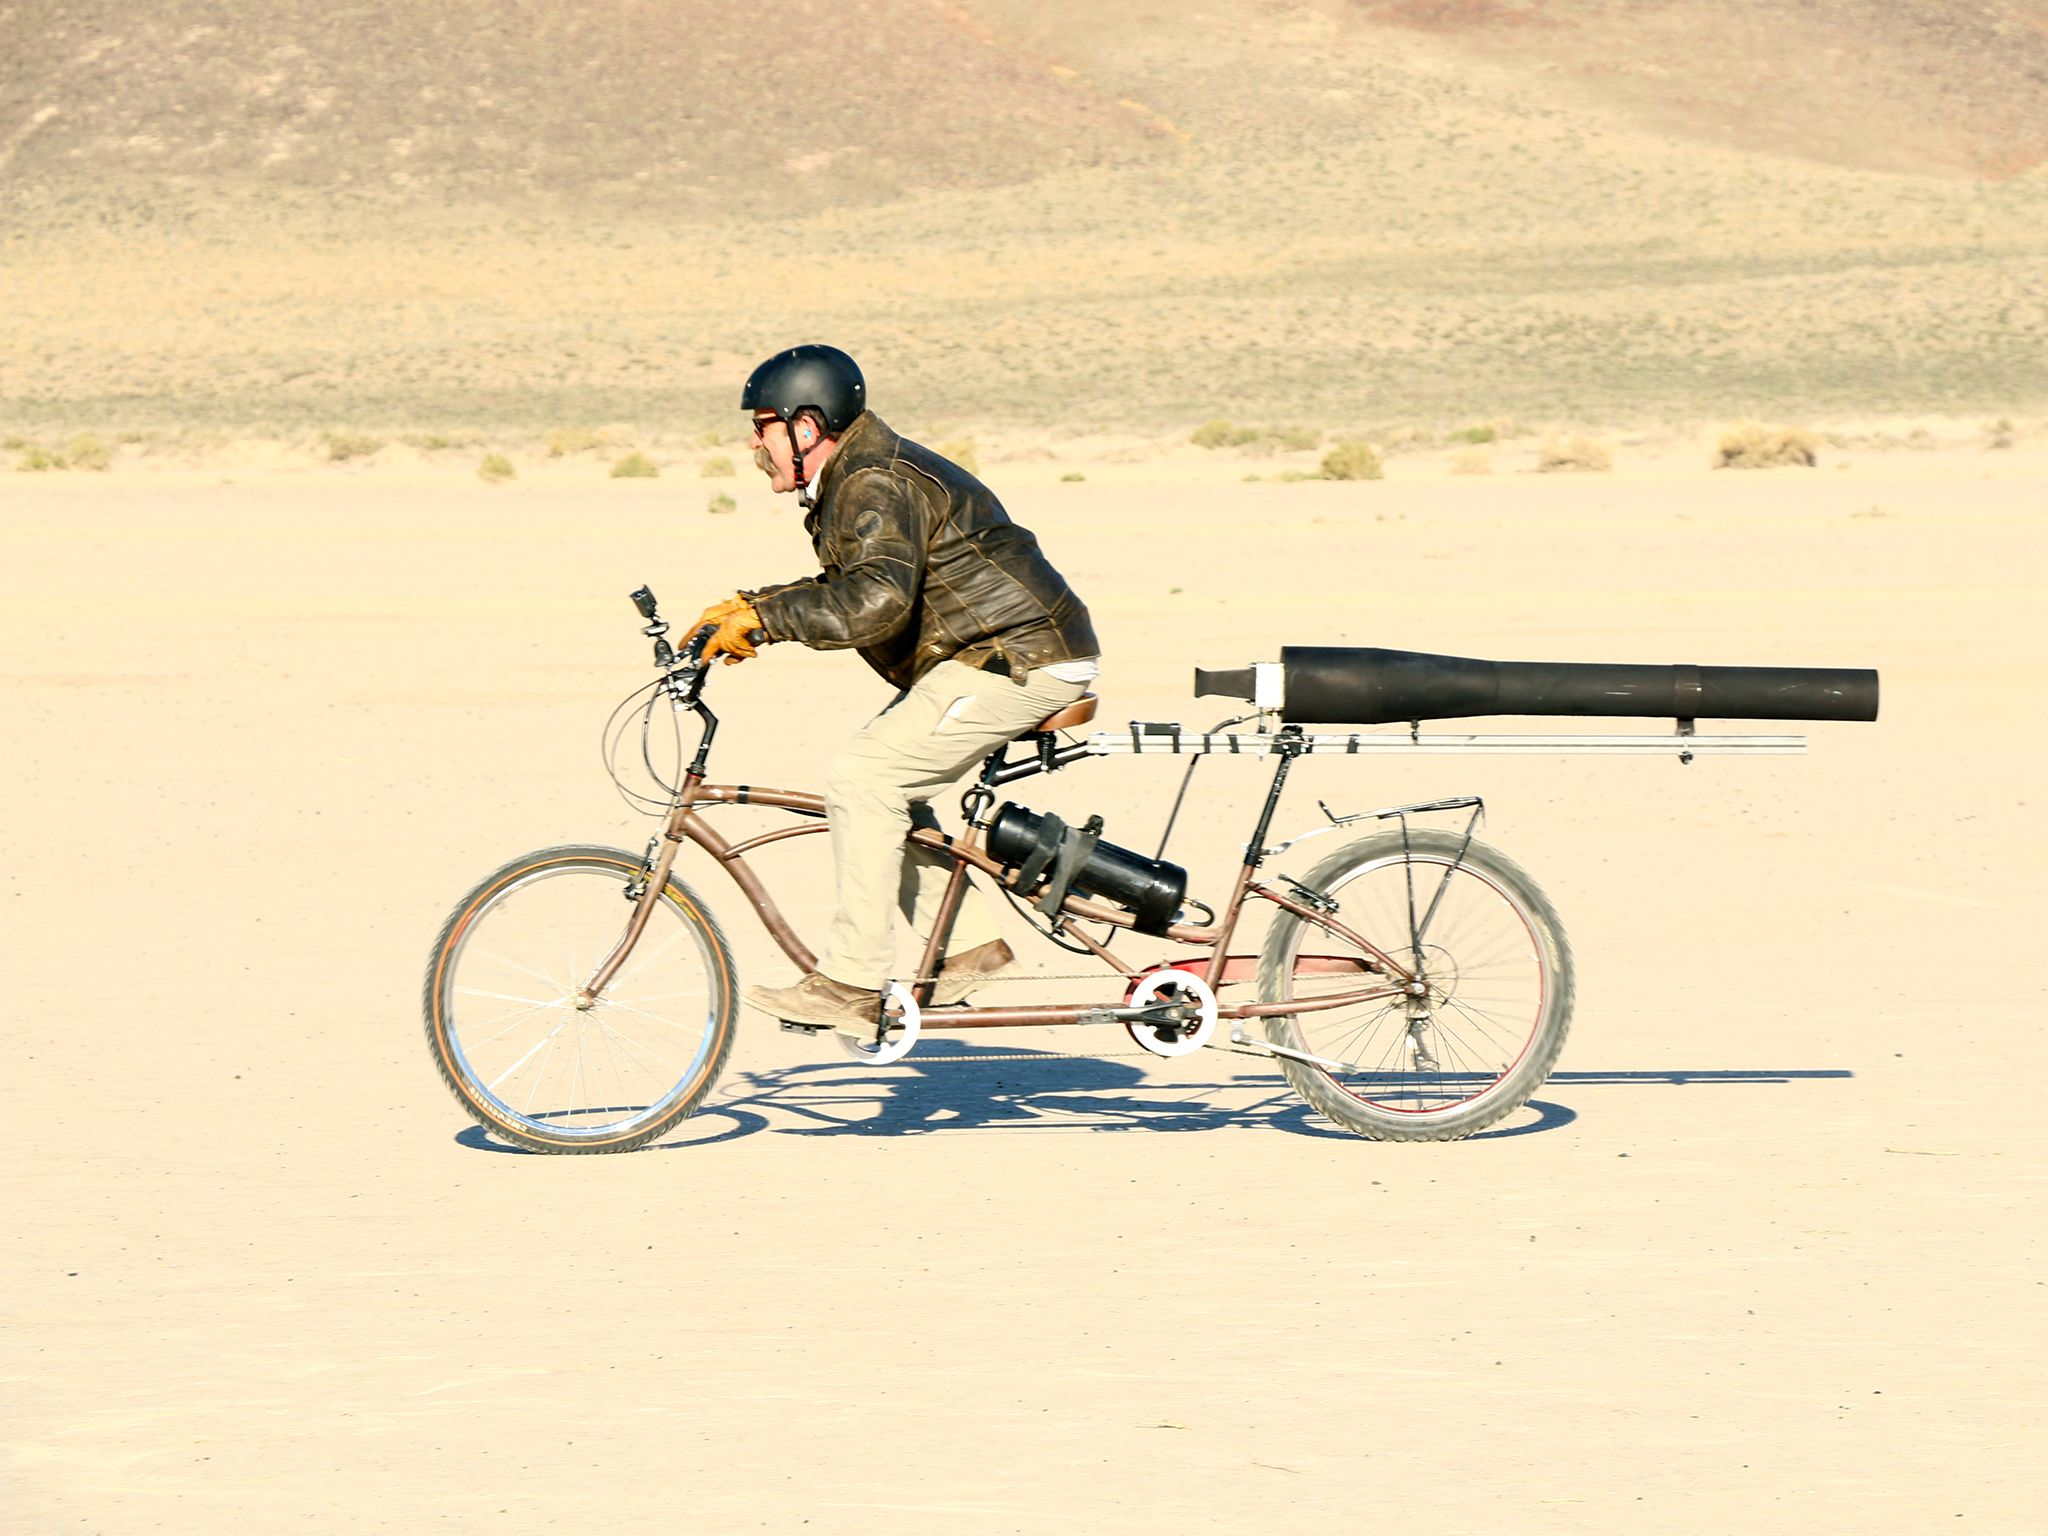 Fallon, Nev.:  Engineer, Dick Strawbridge tests his rocket powered bike. This image is from... [Photo of the day - December 2015]